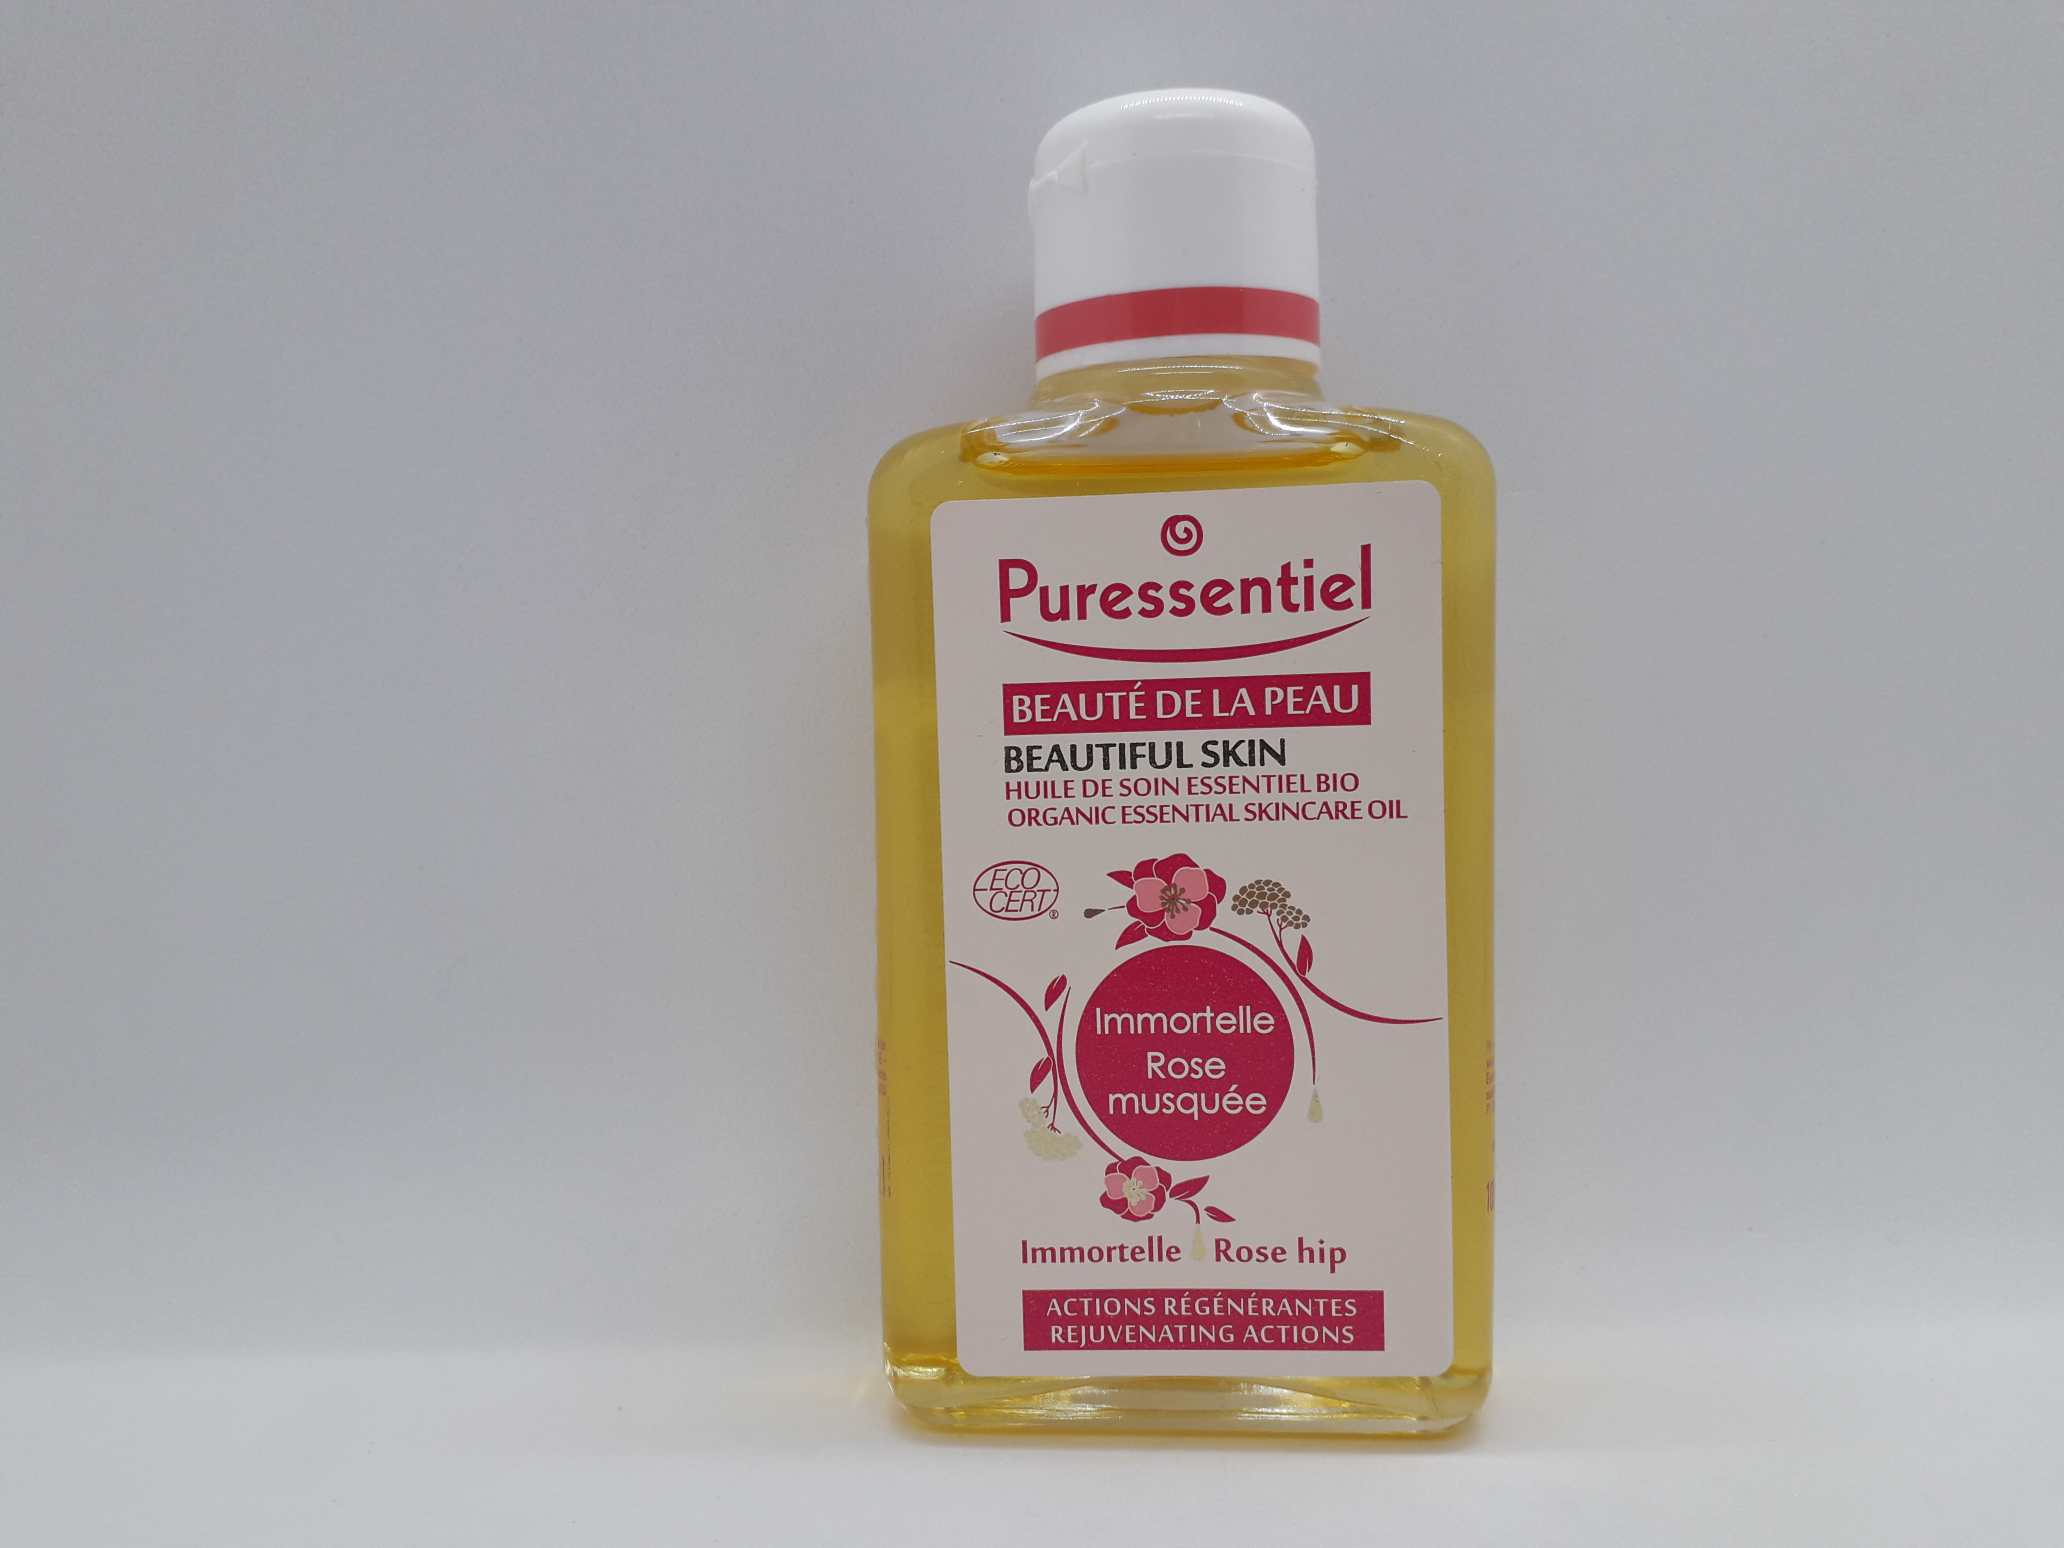 PURESSENTIEL OLIO TRATTAMENTO BELLEZZA CORPO 100 ML - Farmaciaempatica.it